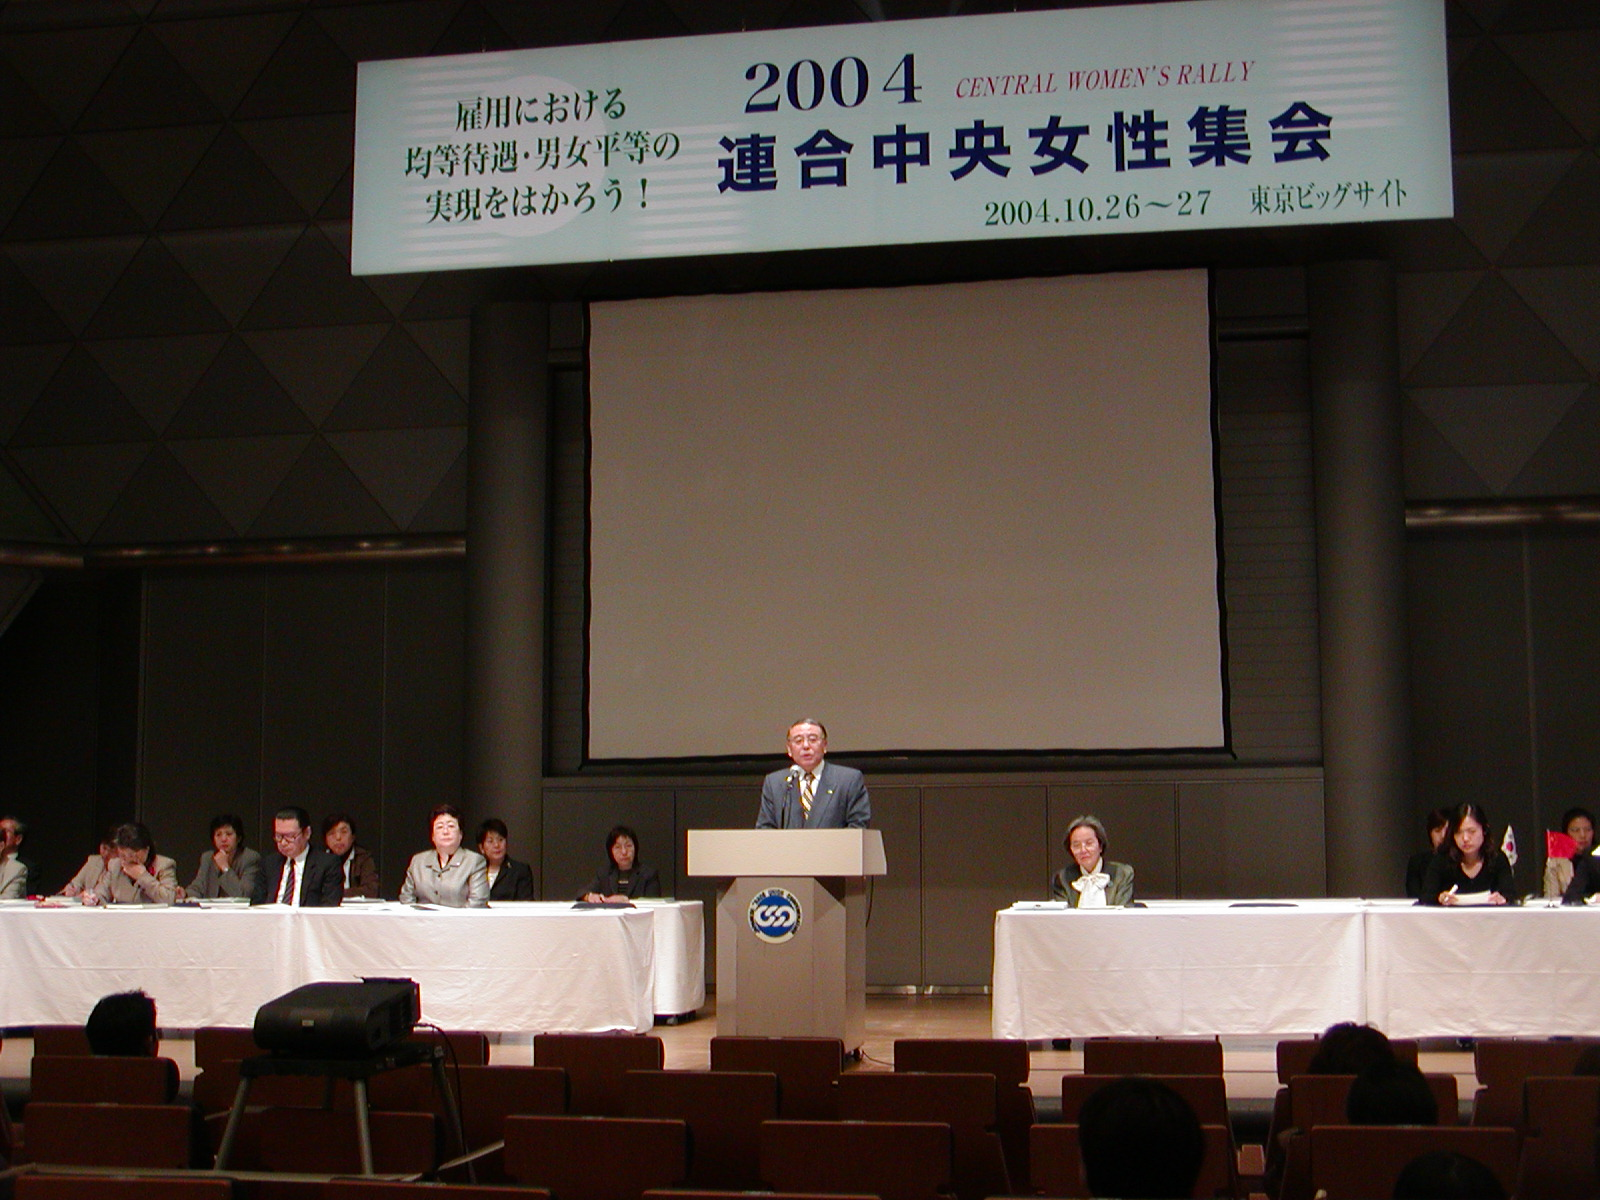 Photo: General Secretary Kusano offers a speech on behalf of the organizers. (October 26, Tokyo Big Sight)